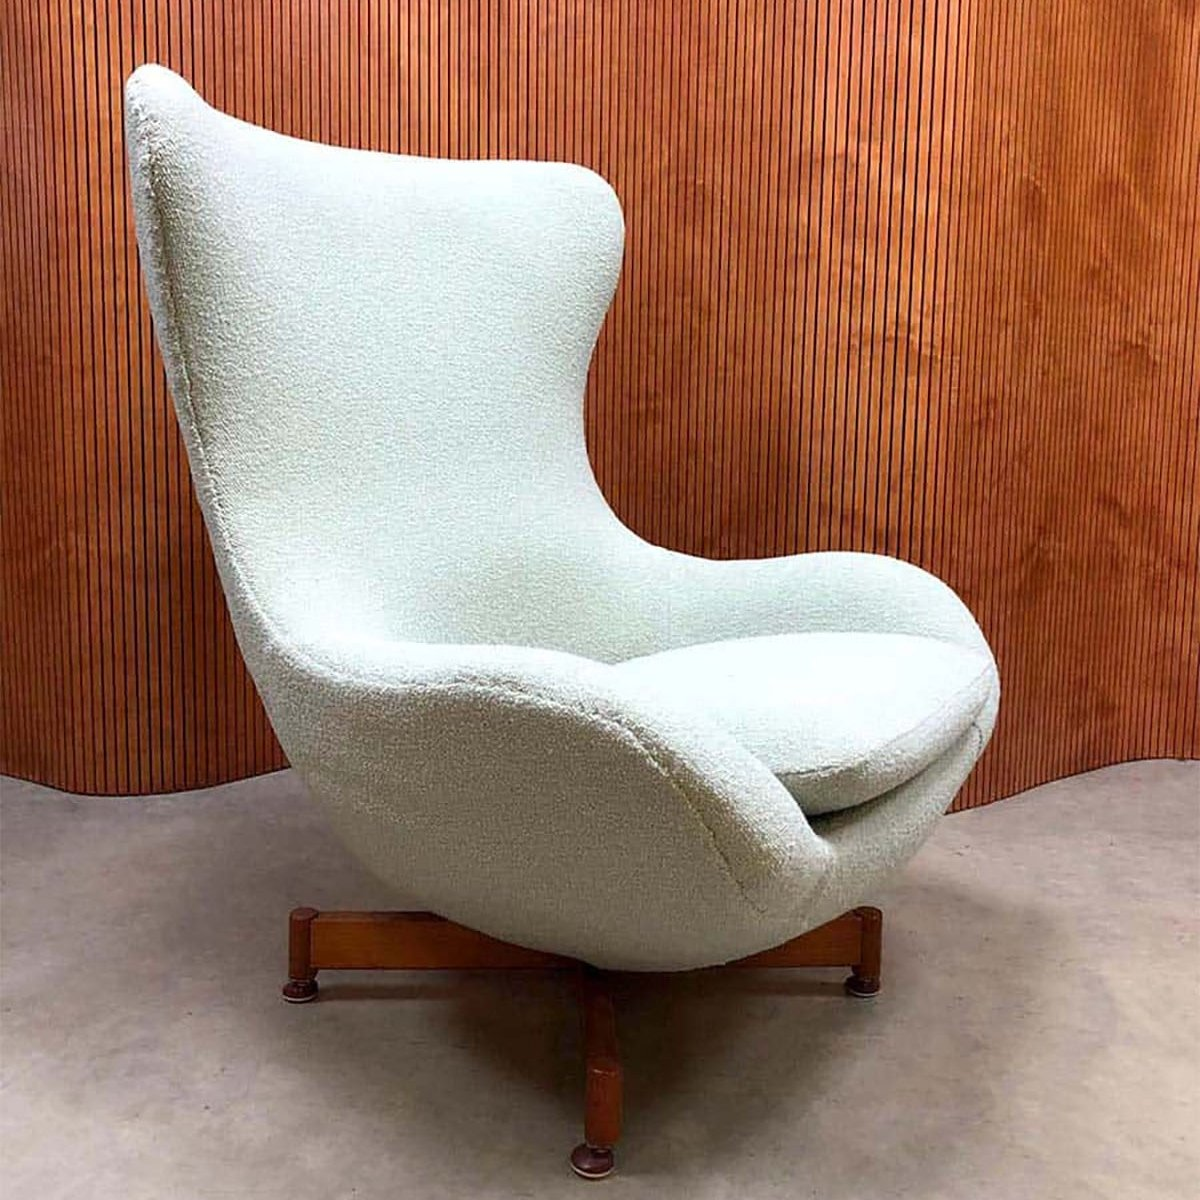 Miraculous Vintage Design Wingback Swivel Egg Chair Cjindustries Chair Design For Home Cjindustriesco